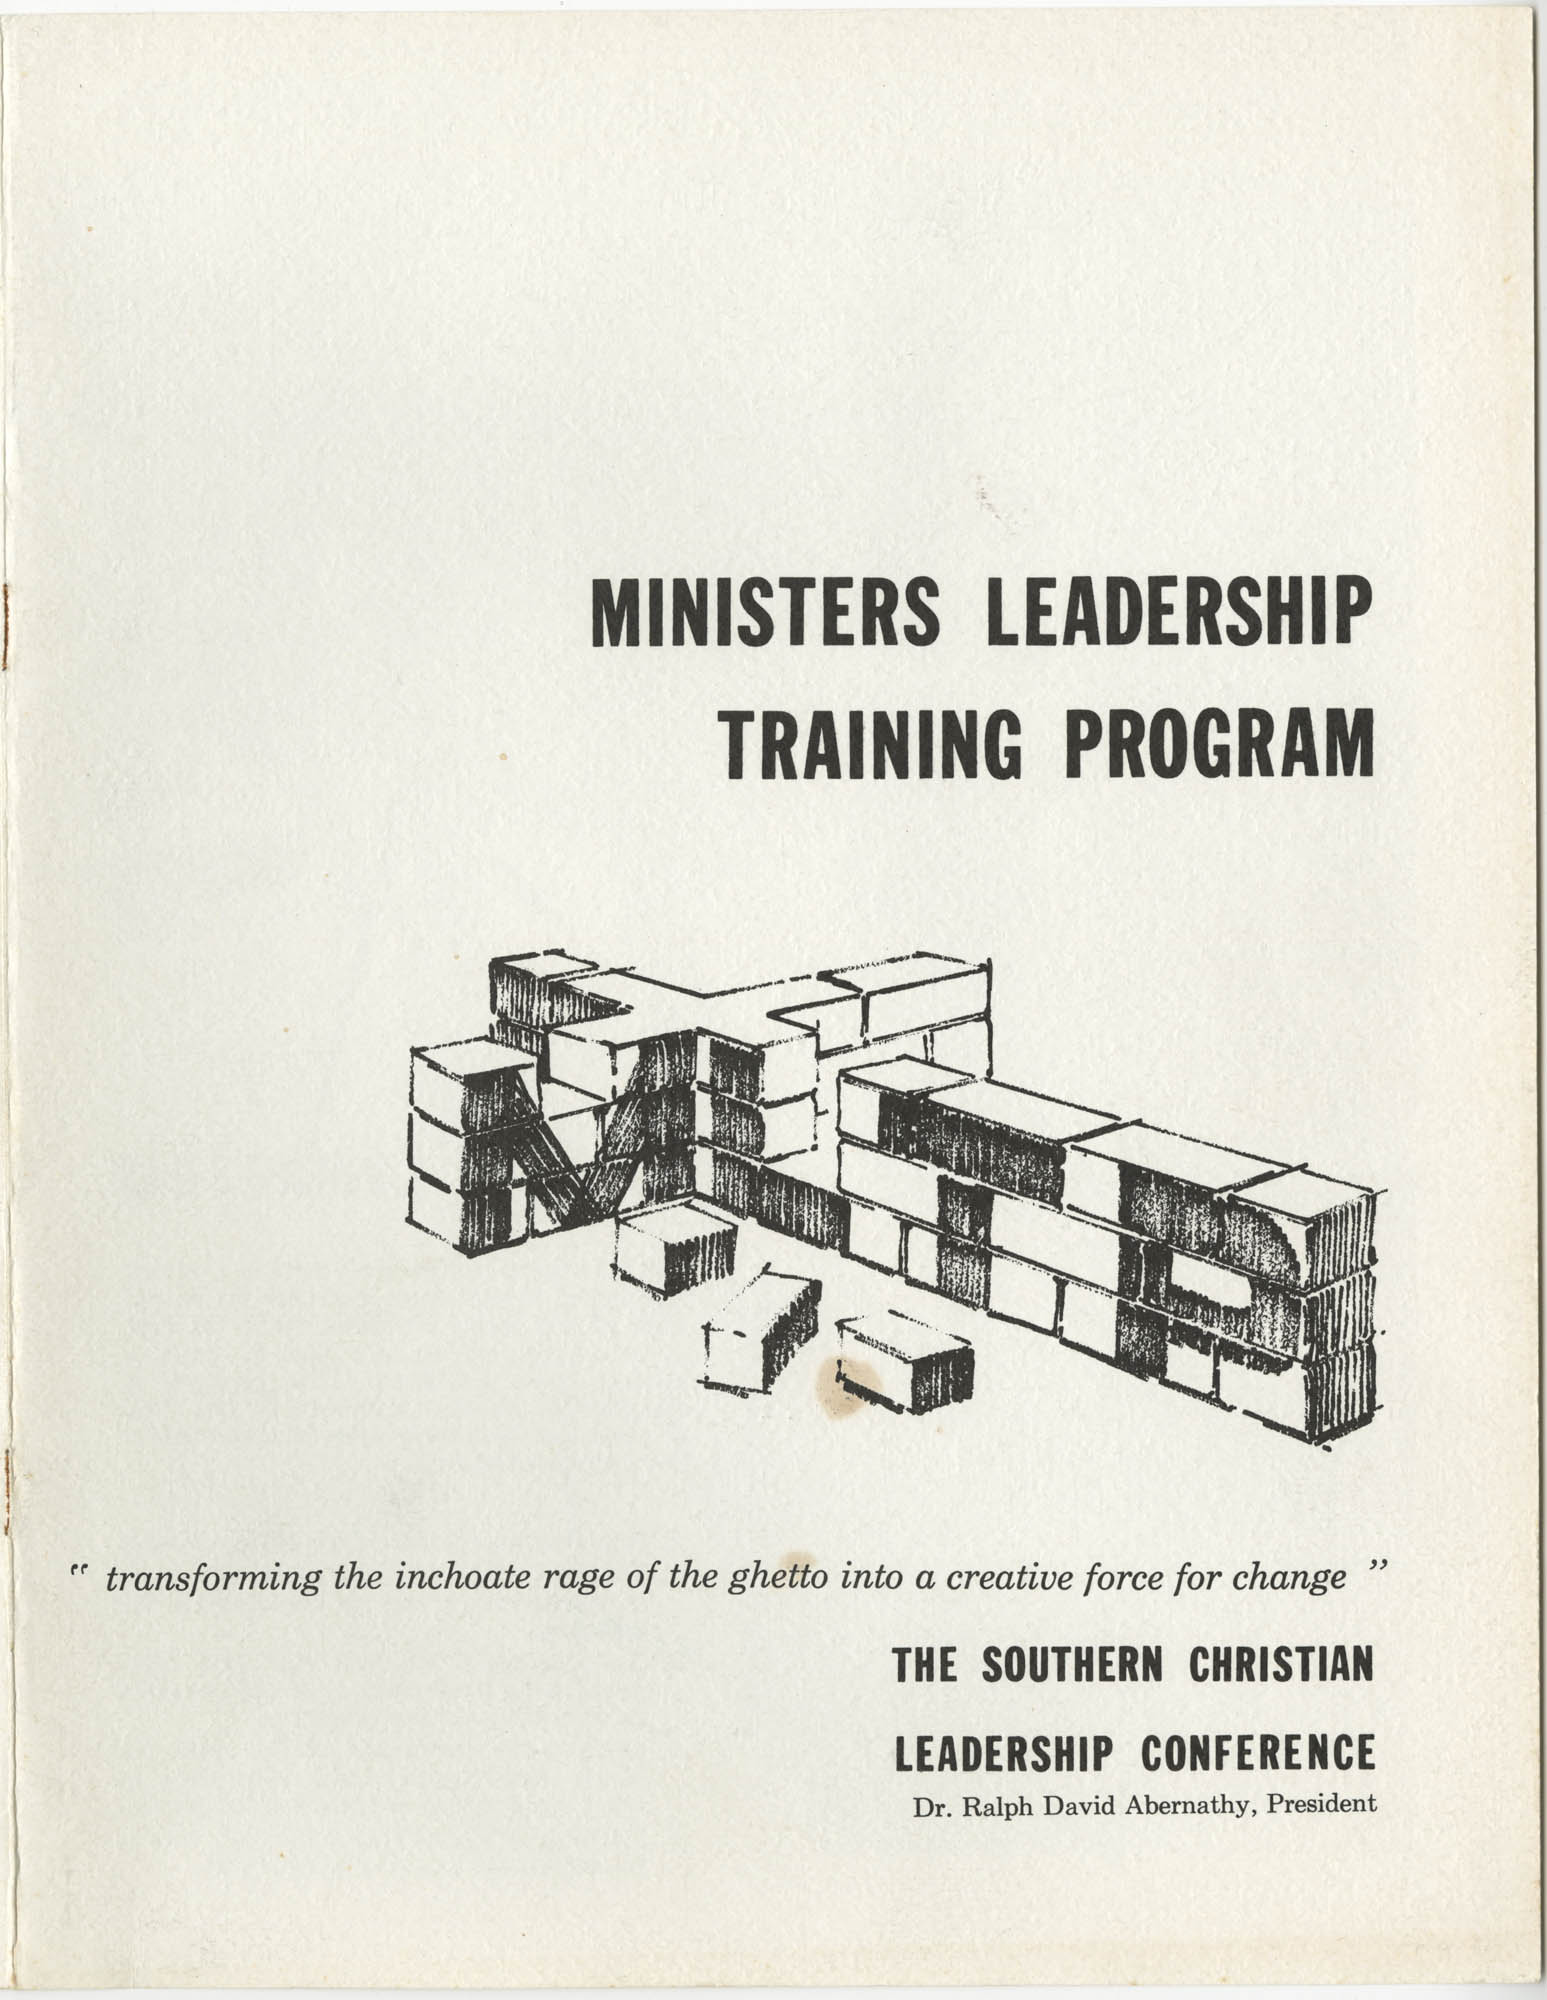 Ministers Leadership Training Program, Cover